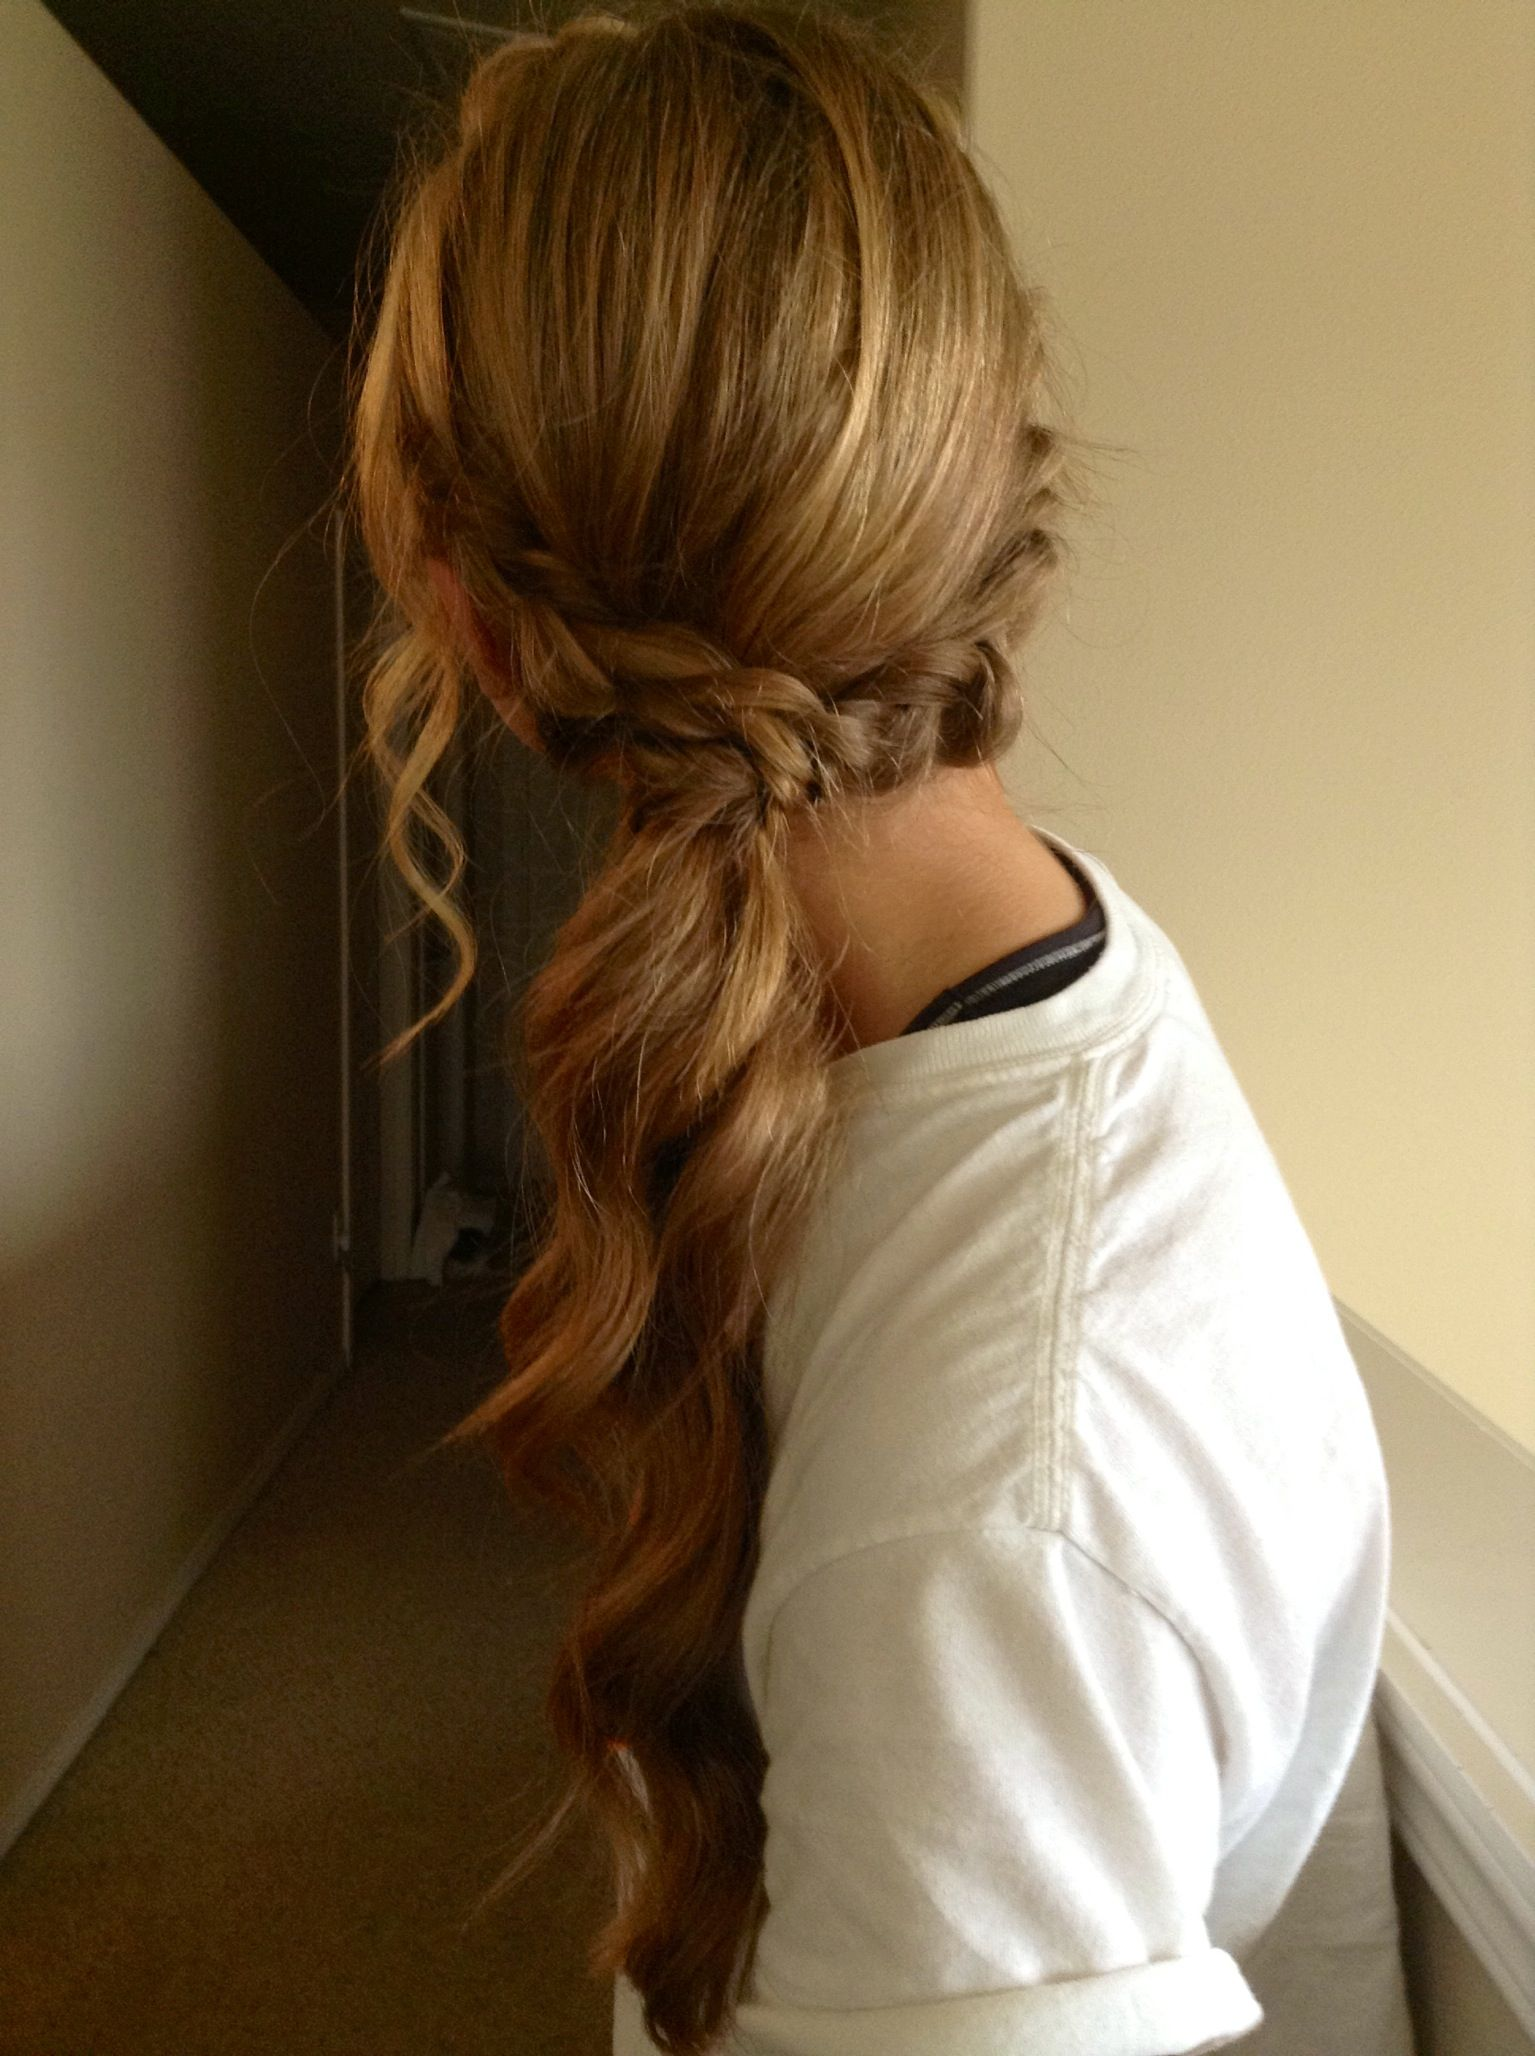 Homecoming/Prom Ponytail | My Hairstyles | Pinterest ...